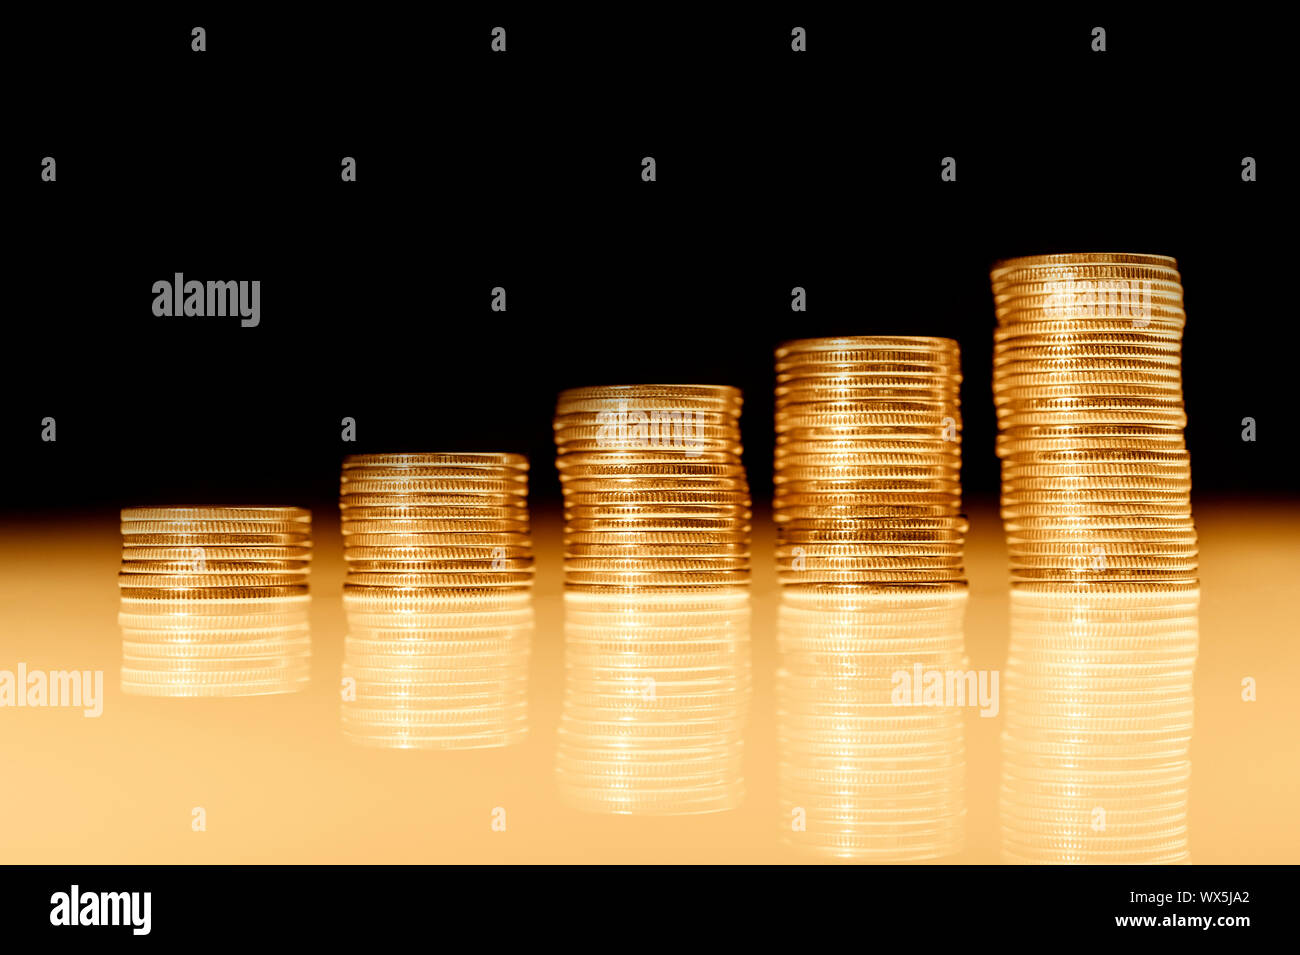 Stack of gold coins macro. Rows of coins for finance and banking concept. Economy trends background. Stock Photo